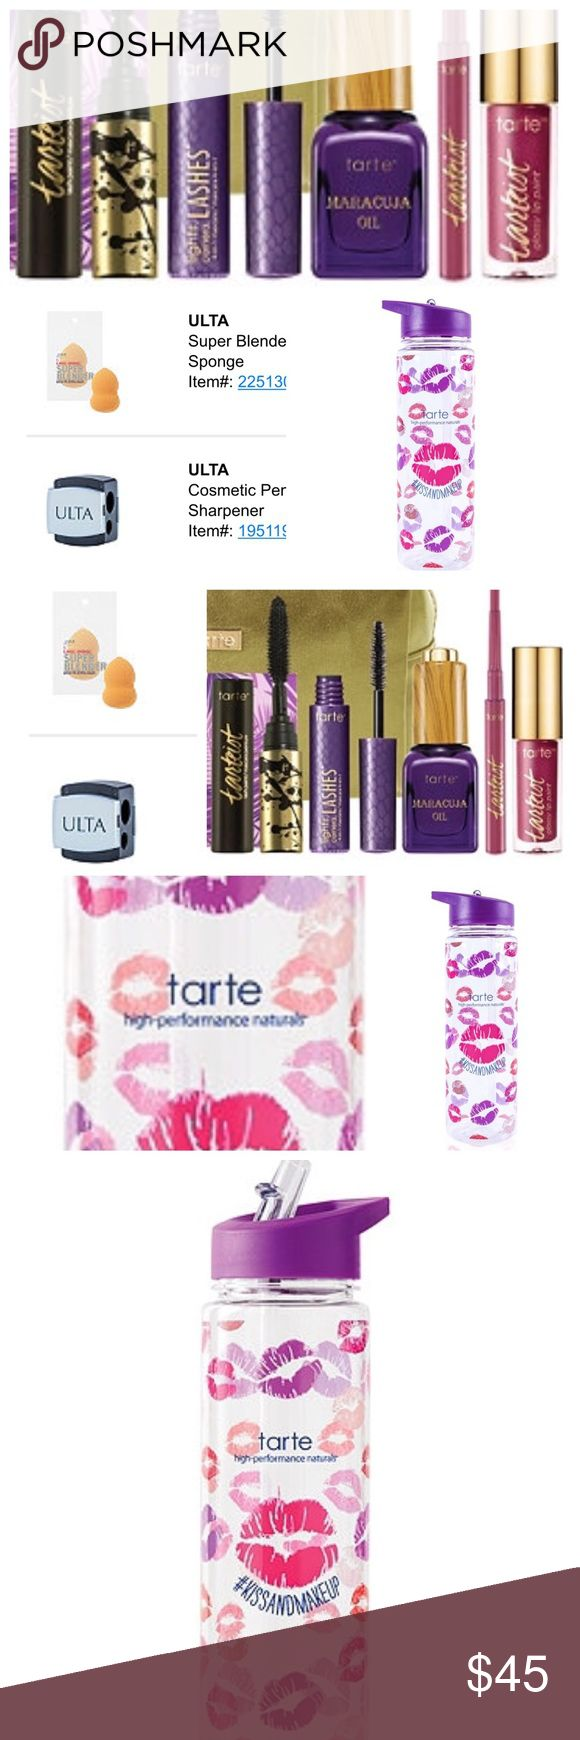 ❤️NEW❤️ TARTE bundle & Ulta bundle ❤️ All NWT Includes all in photographs. All new and Authentic. Also includes tarte makeup bag, beauty blender & sharpener. Will receive Wednesday & can upload actual photos then ❤️ Tag words: tarte bundle tarte lipstick tarte oil tarte lip liner tarte mascara tarte makeup bag beauty blender makeup sharpener Ulta bundle cute water bottle tarte too faced stila urban decay Kylie cosmetics tarte Makeup Lipstick